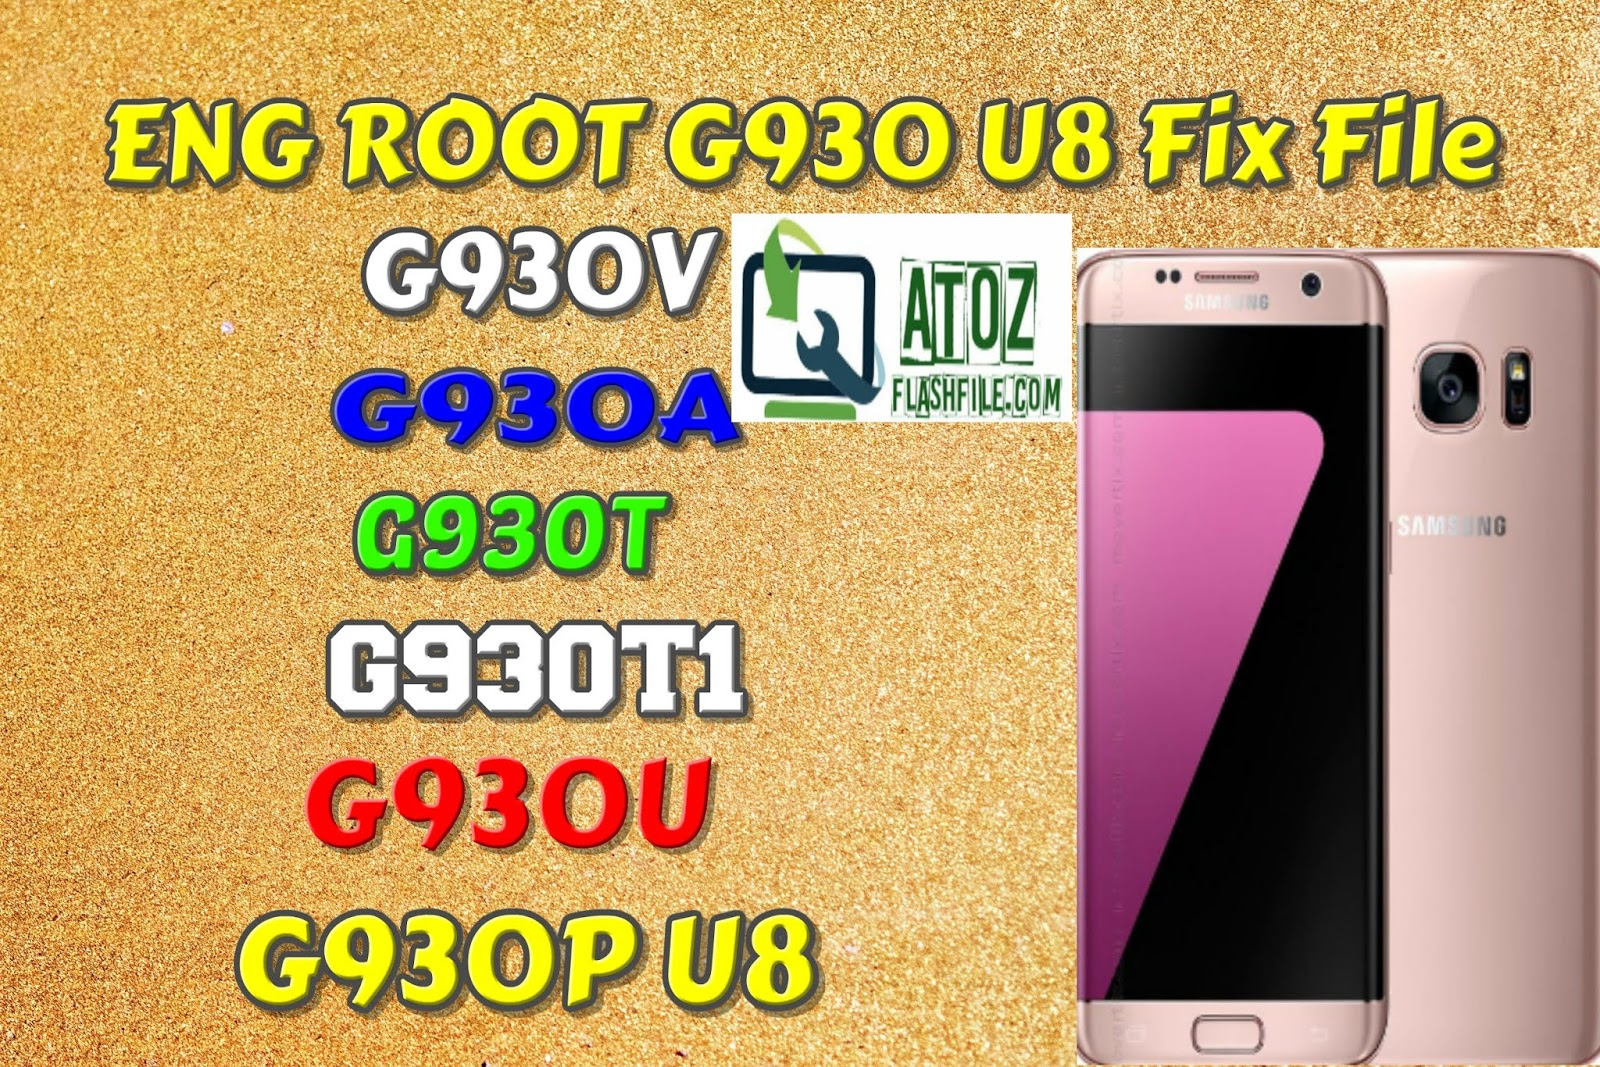 ENG ROOT G930 U8 Fix File - A to Z Flash File